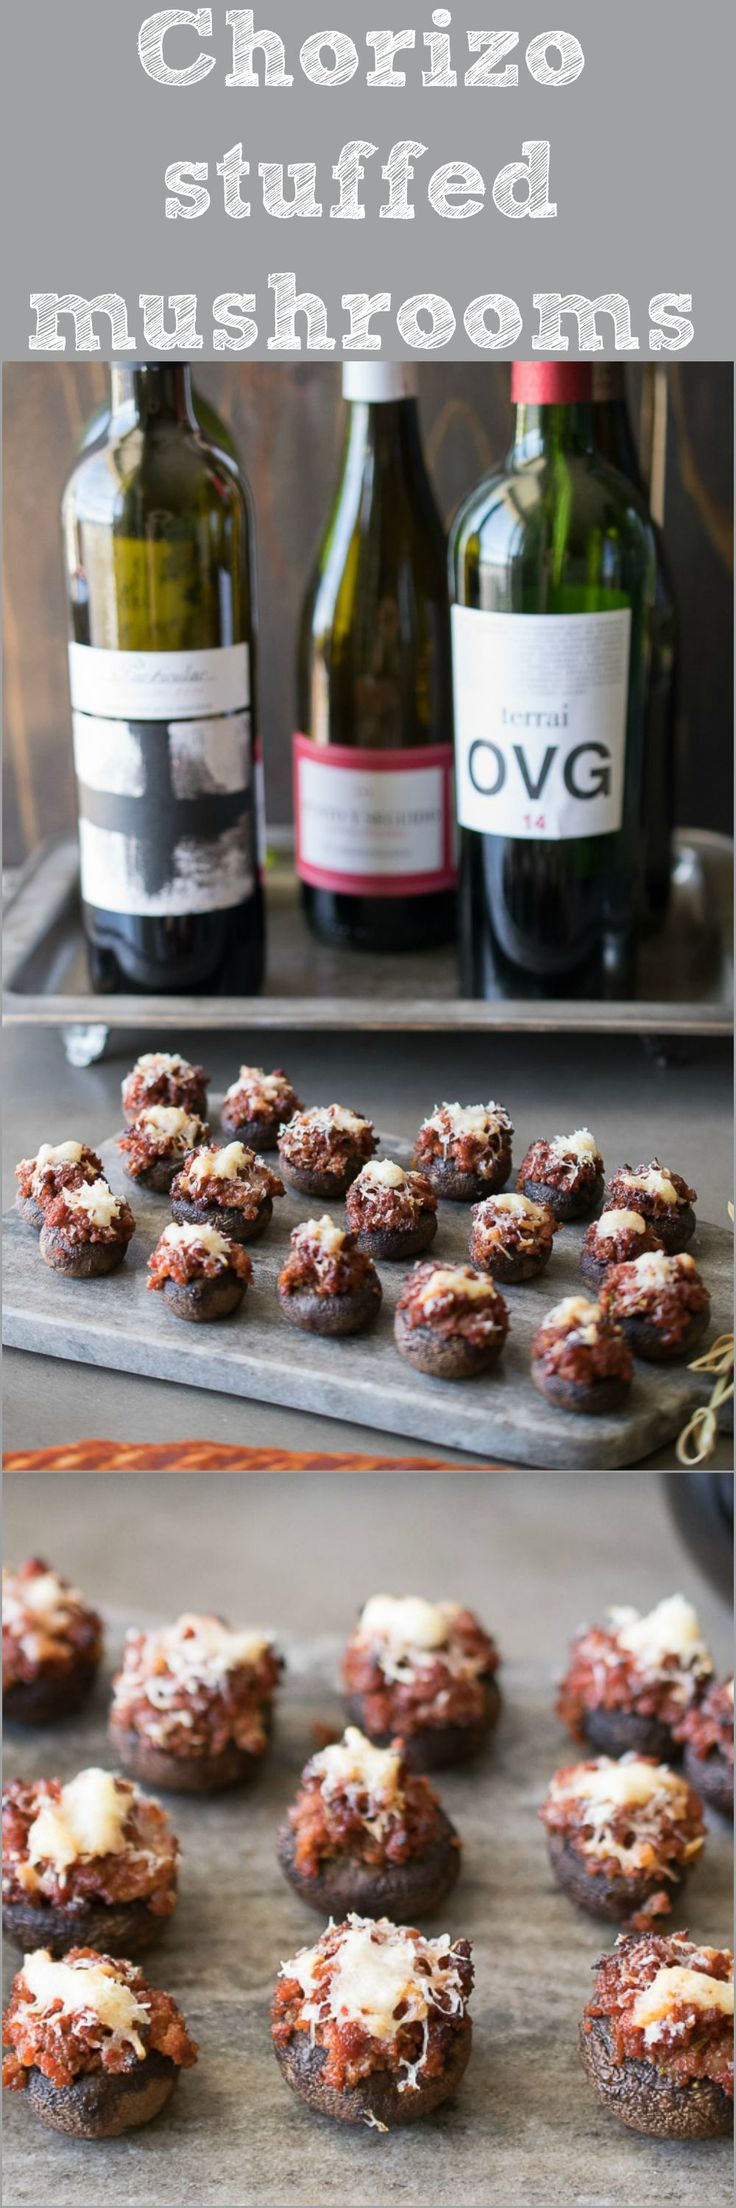 Chorizo stuffed mushrooms. Spanish chorizo cooked with rosemary and wine and stuffed into portobello mushrooms. A delicious Tapas dish.